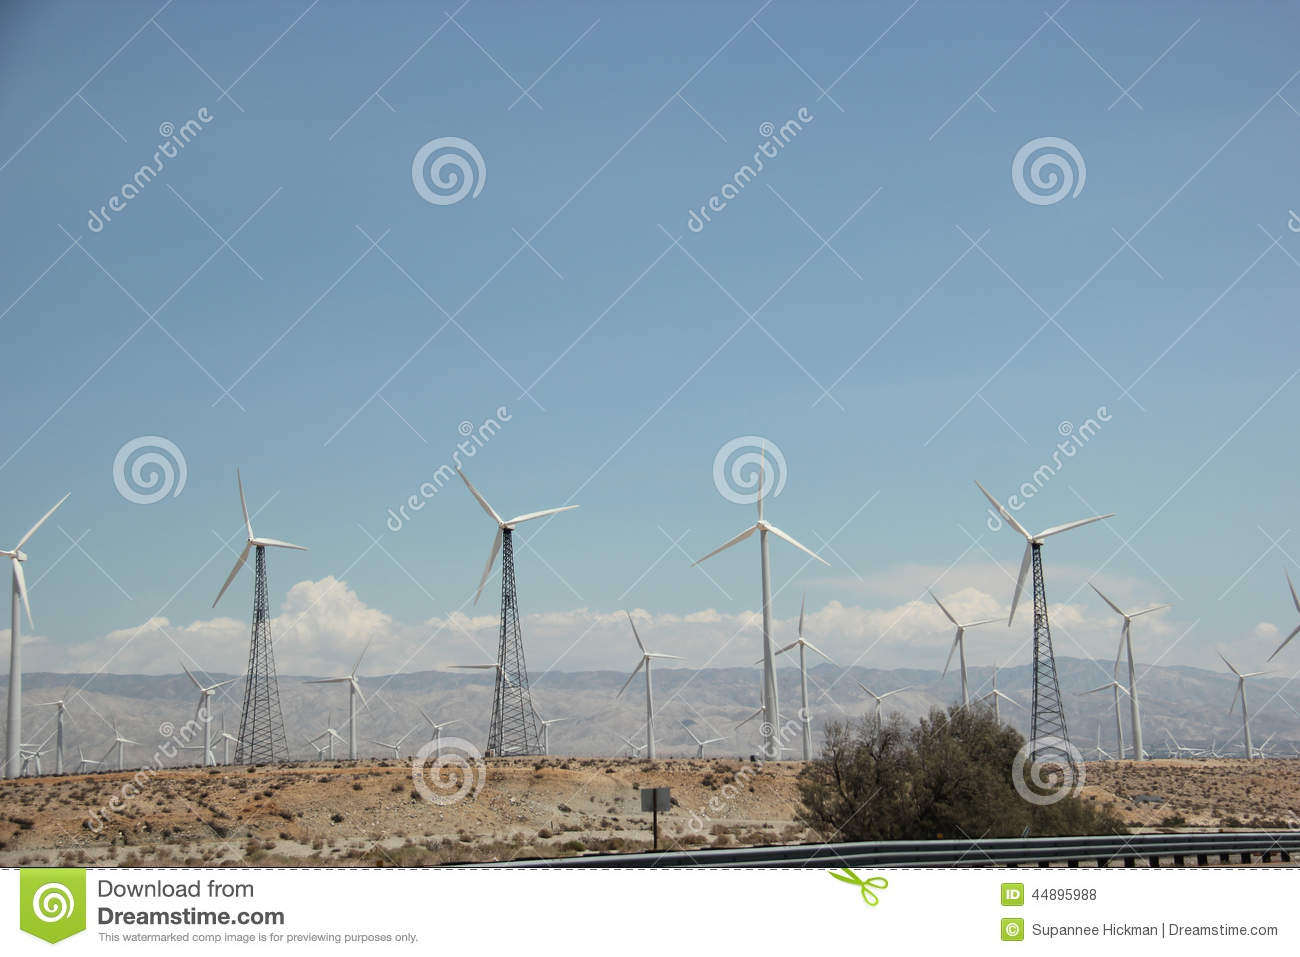 Windmill Generating Electricity for People in Southern California.